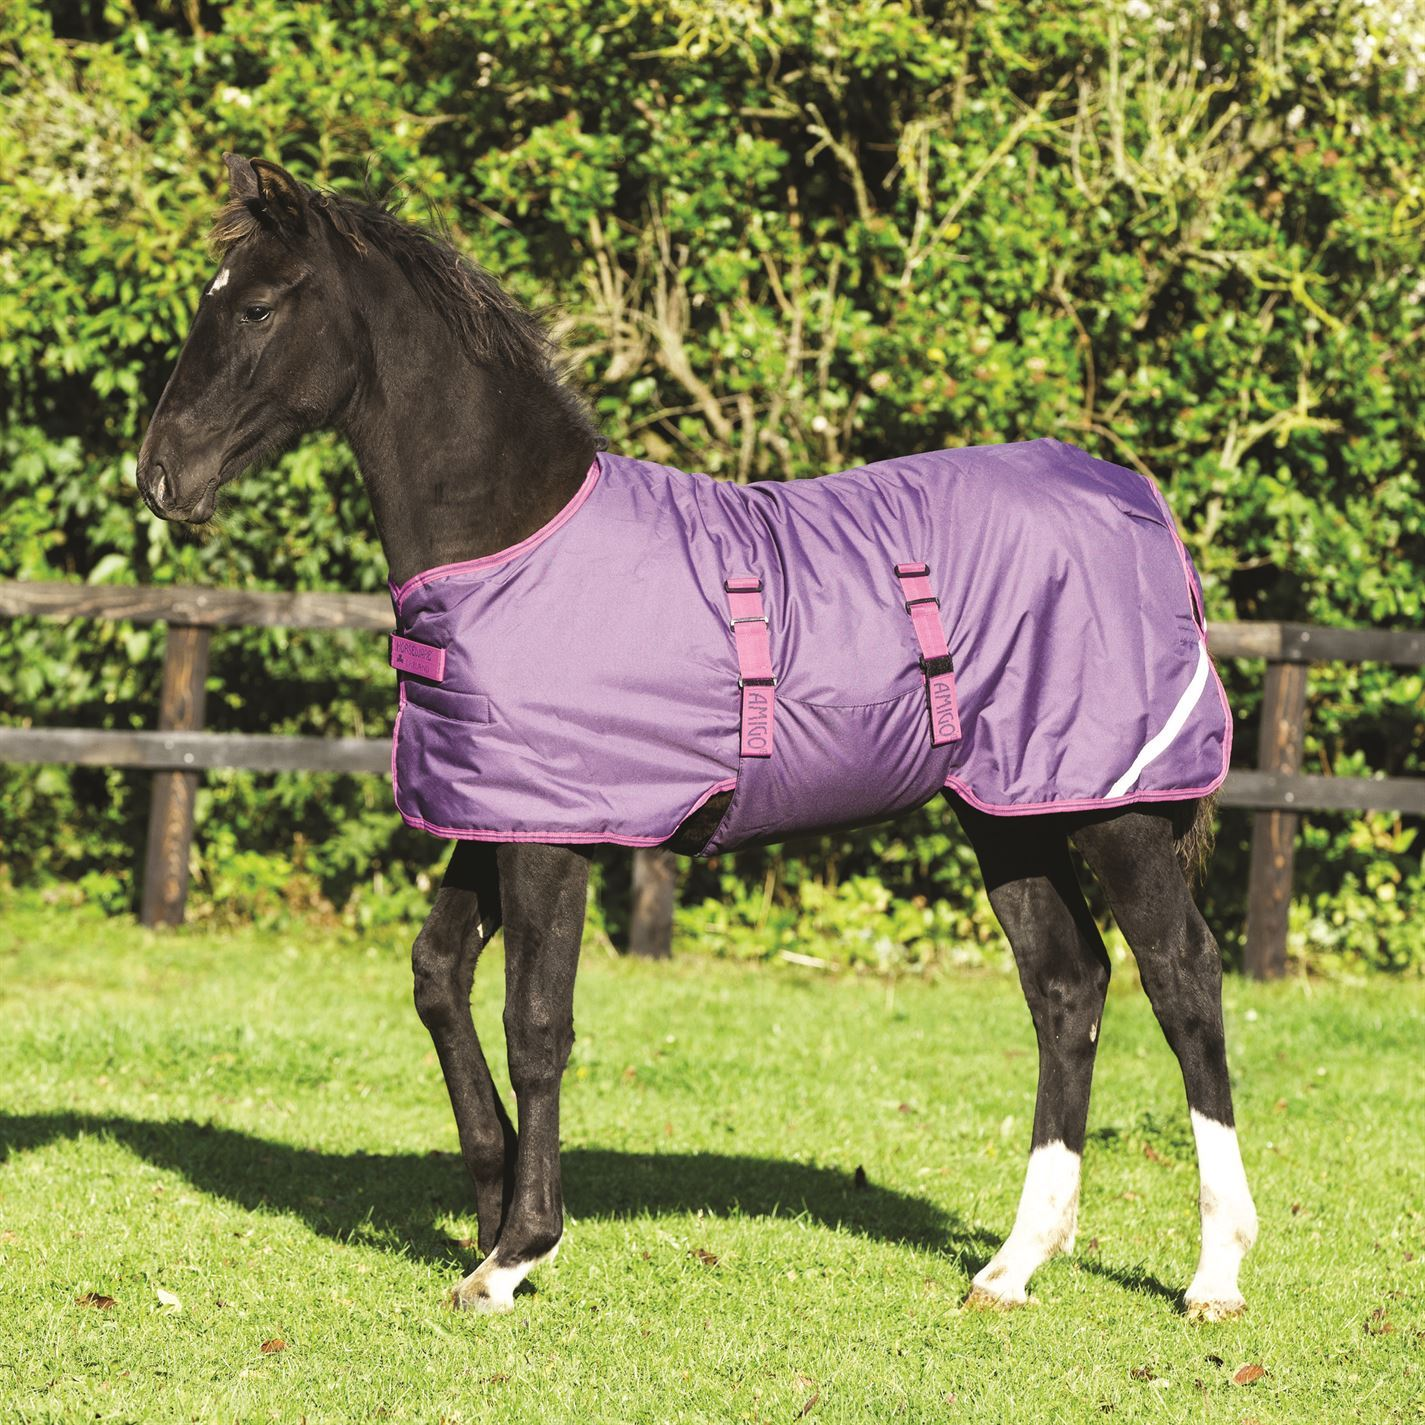 Amigo Foal Horses Rug Horses Foal Riding Body Cover Accessory b5b13c